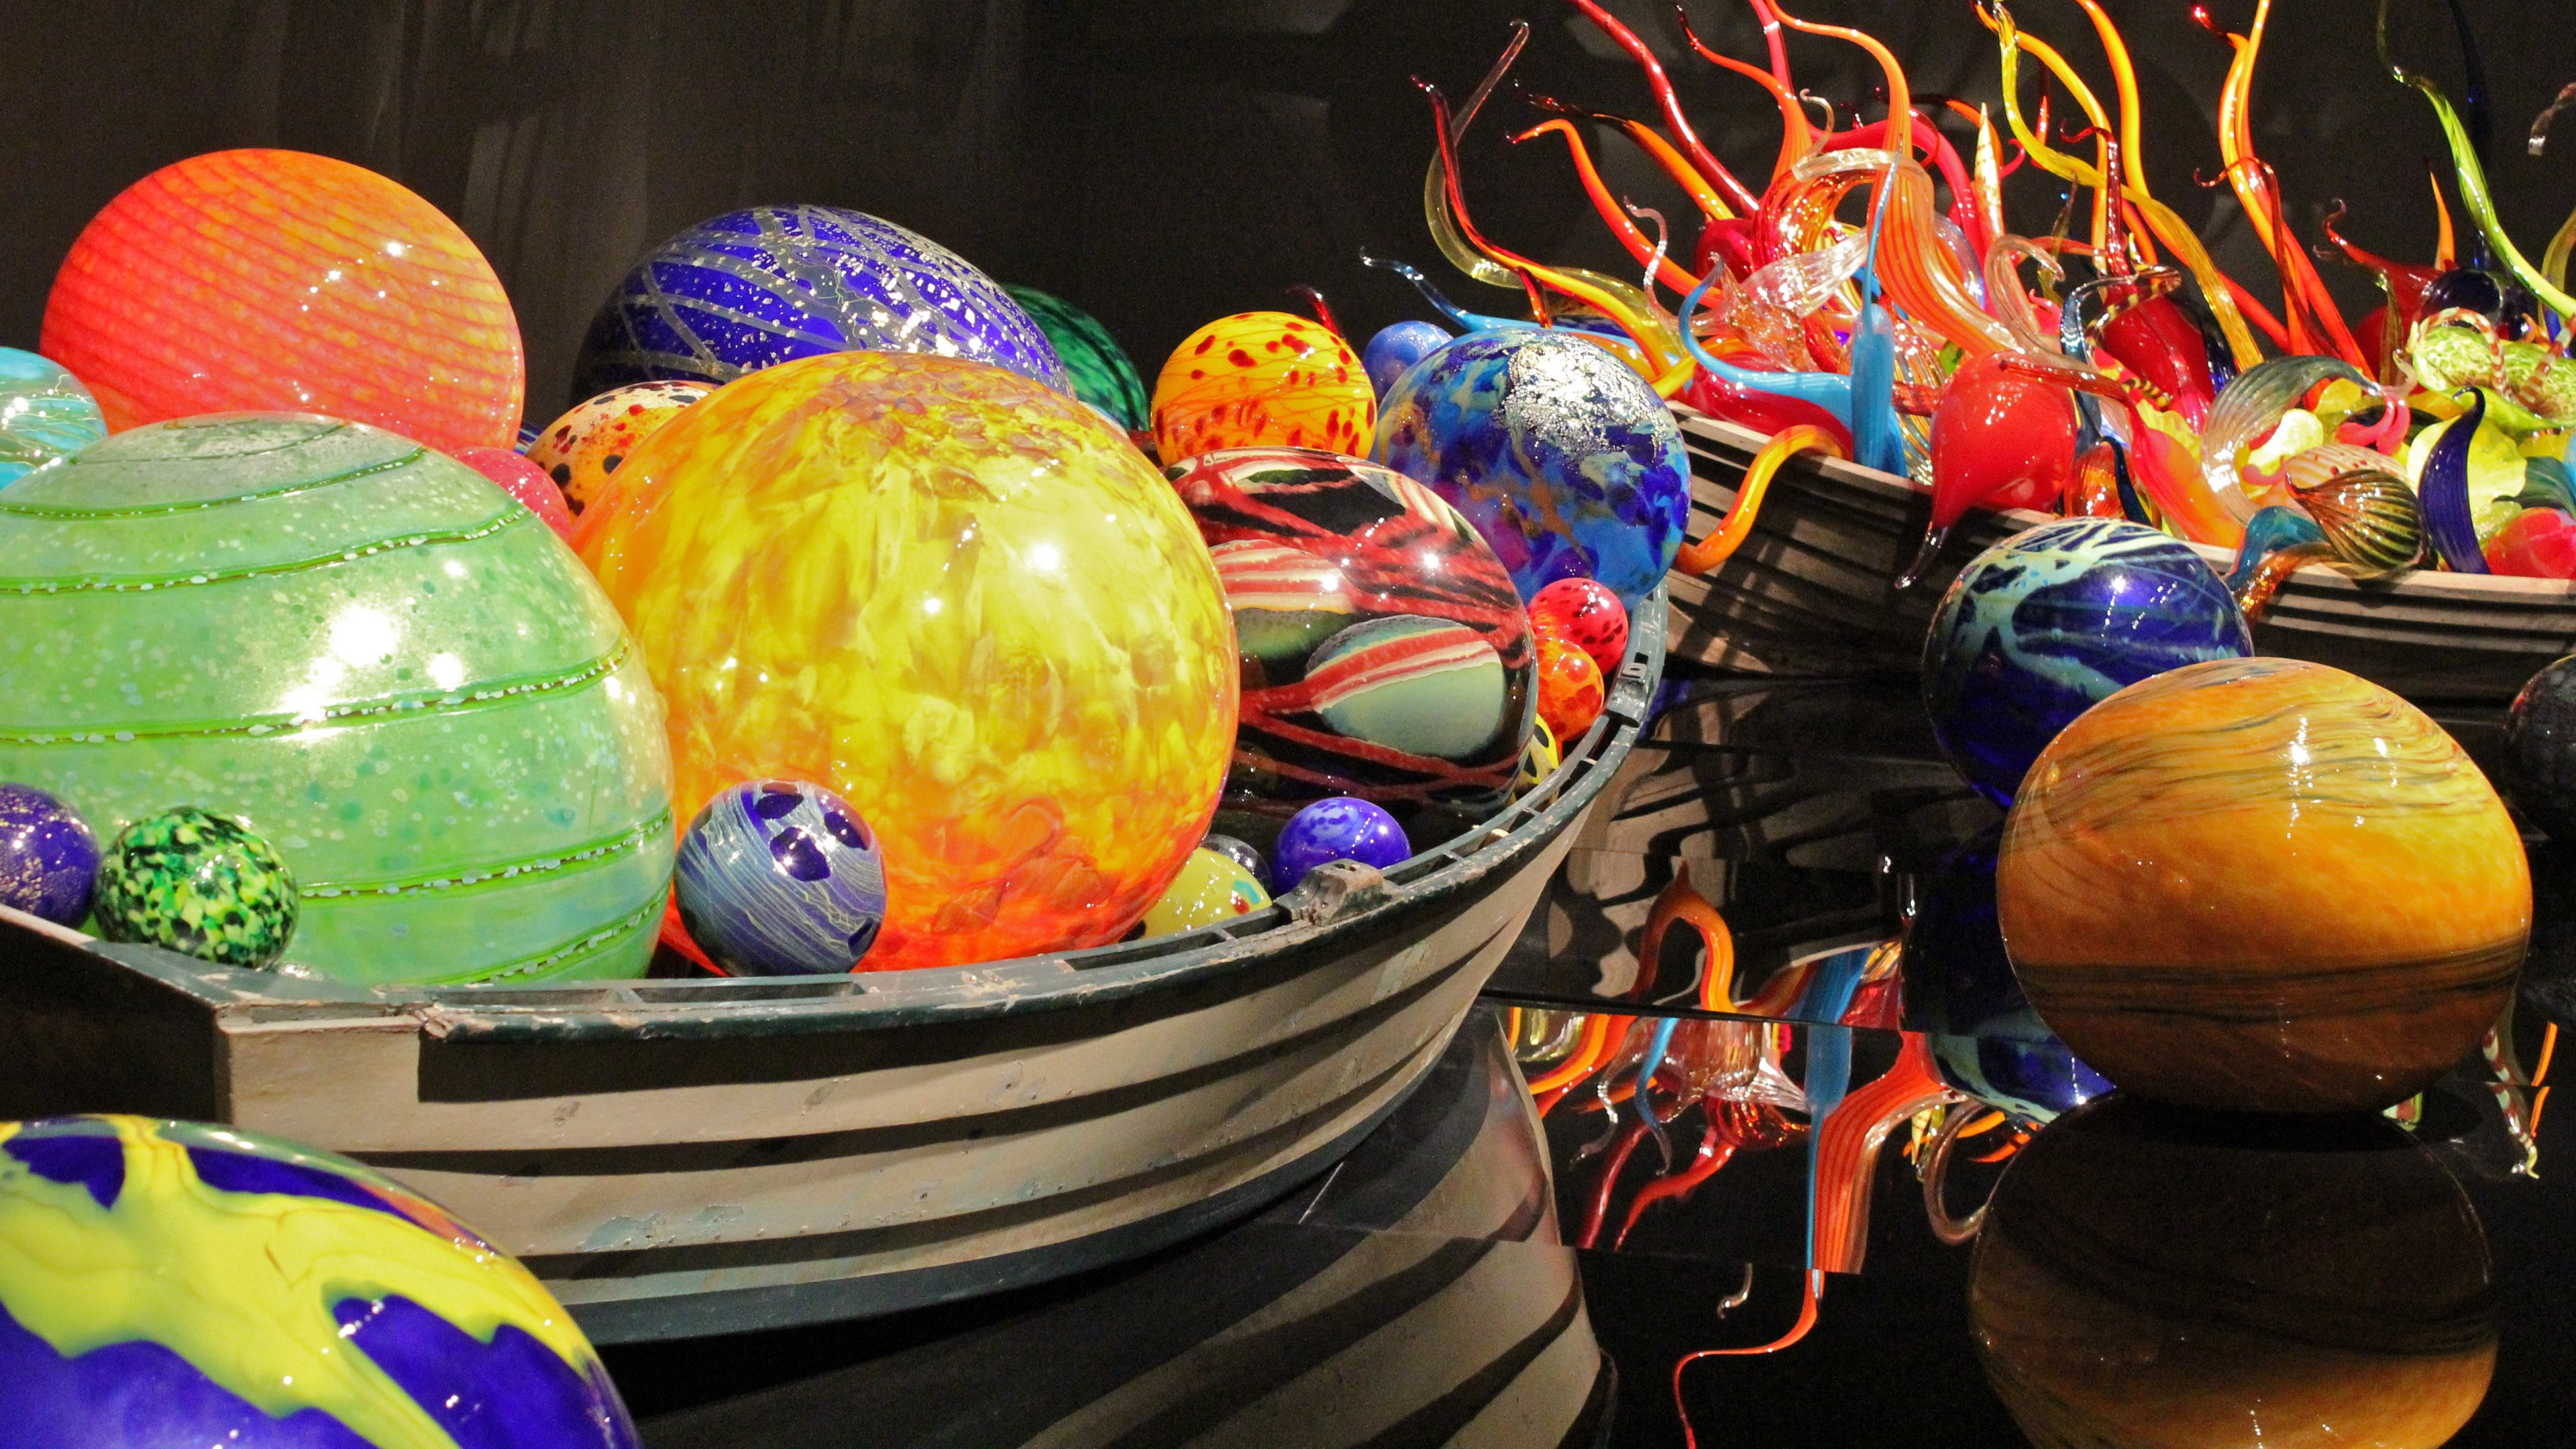 X Px Chihuly Wallpaper